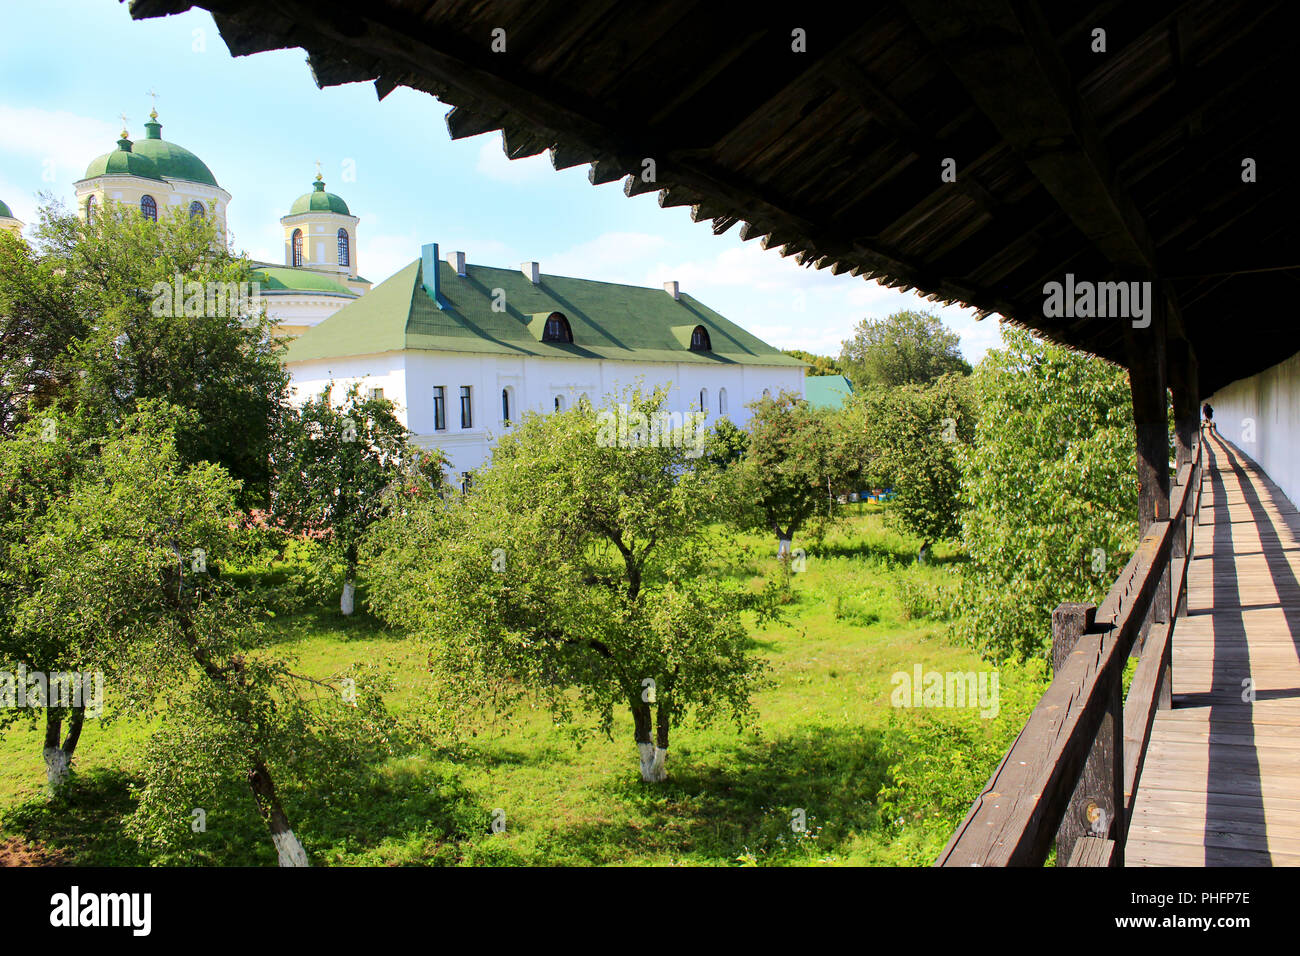 Ancient Slavonic wooden fortress in Novhorod-Siverskii - Stock Image